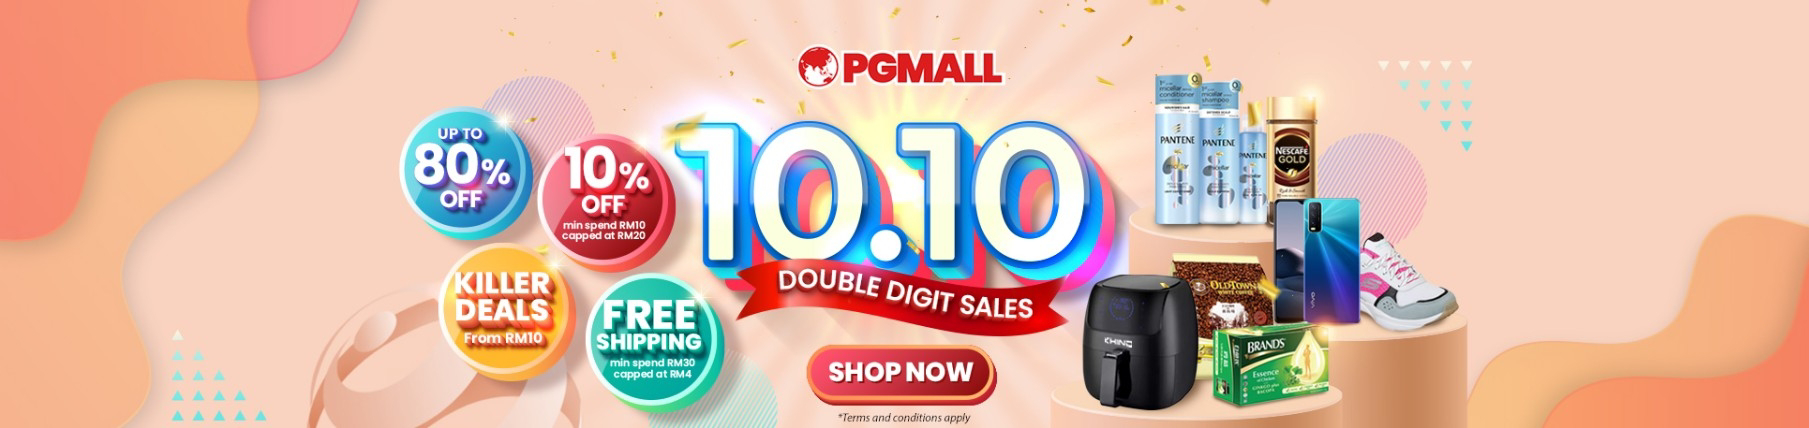 PG MALL 1010 Sale